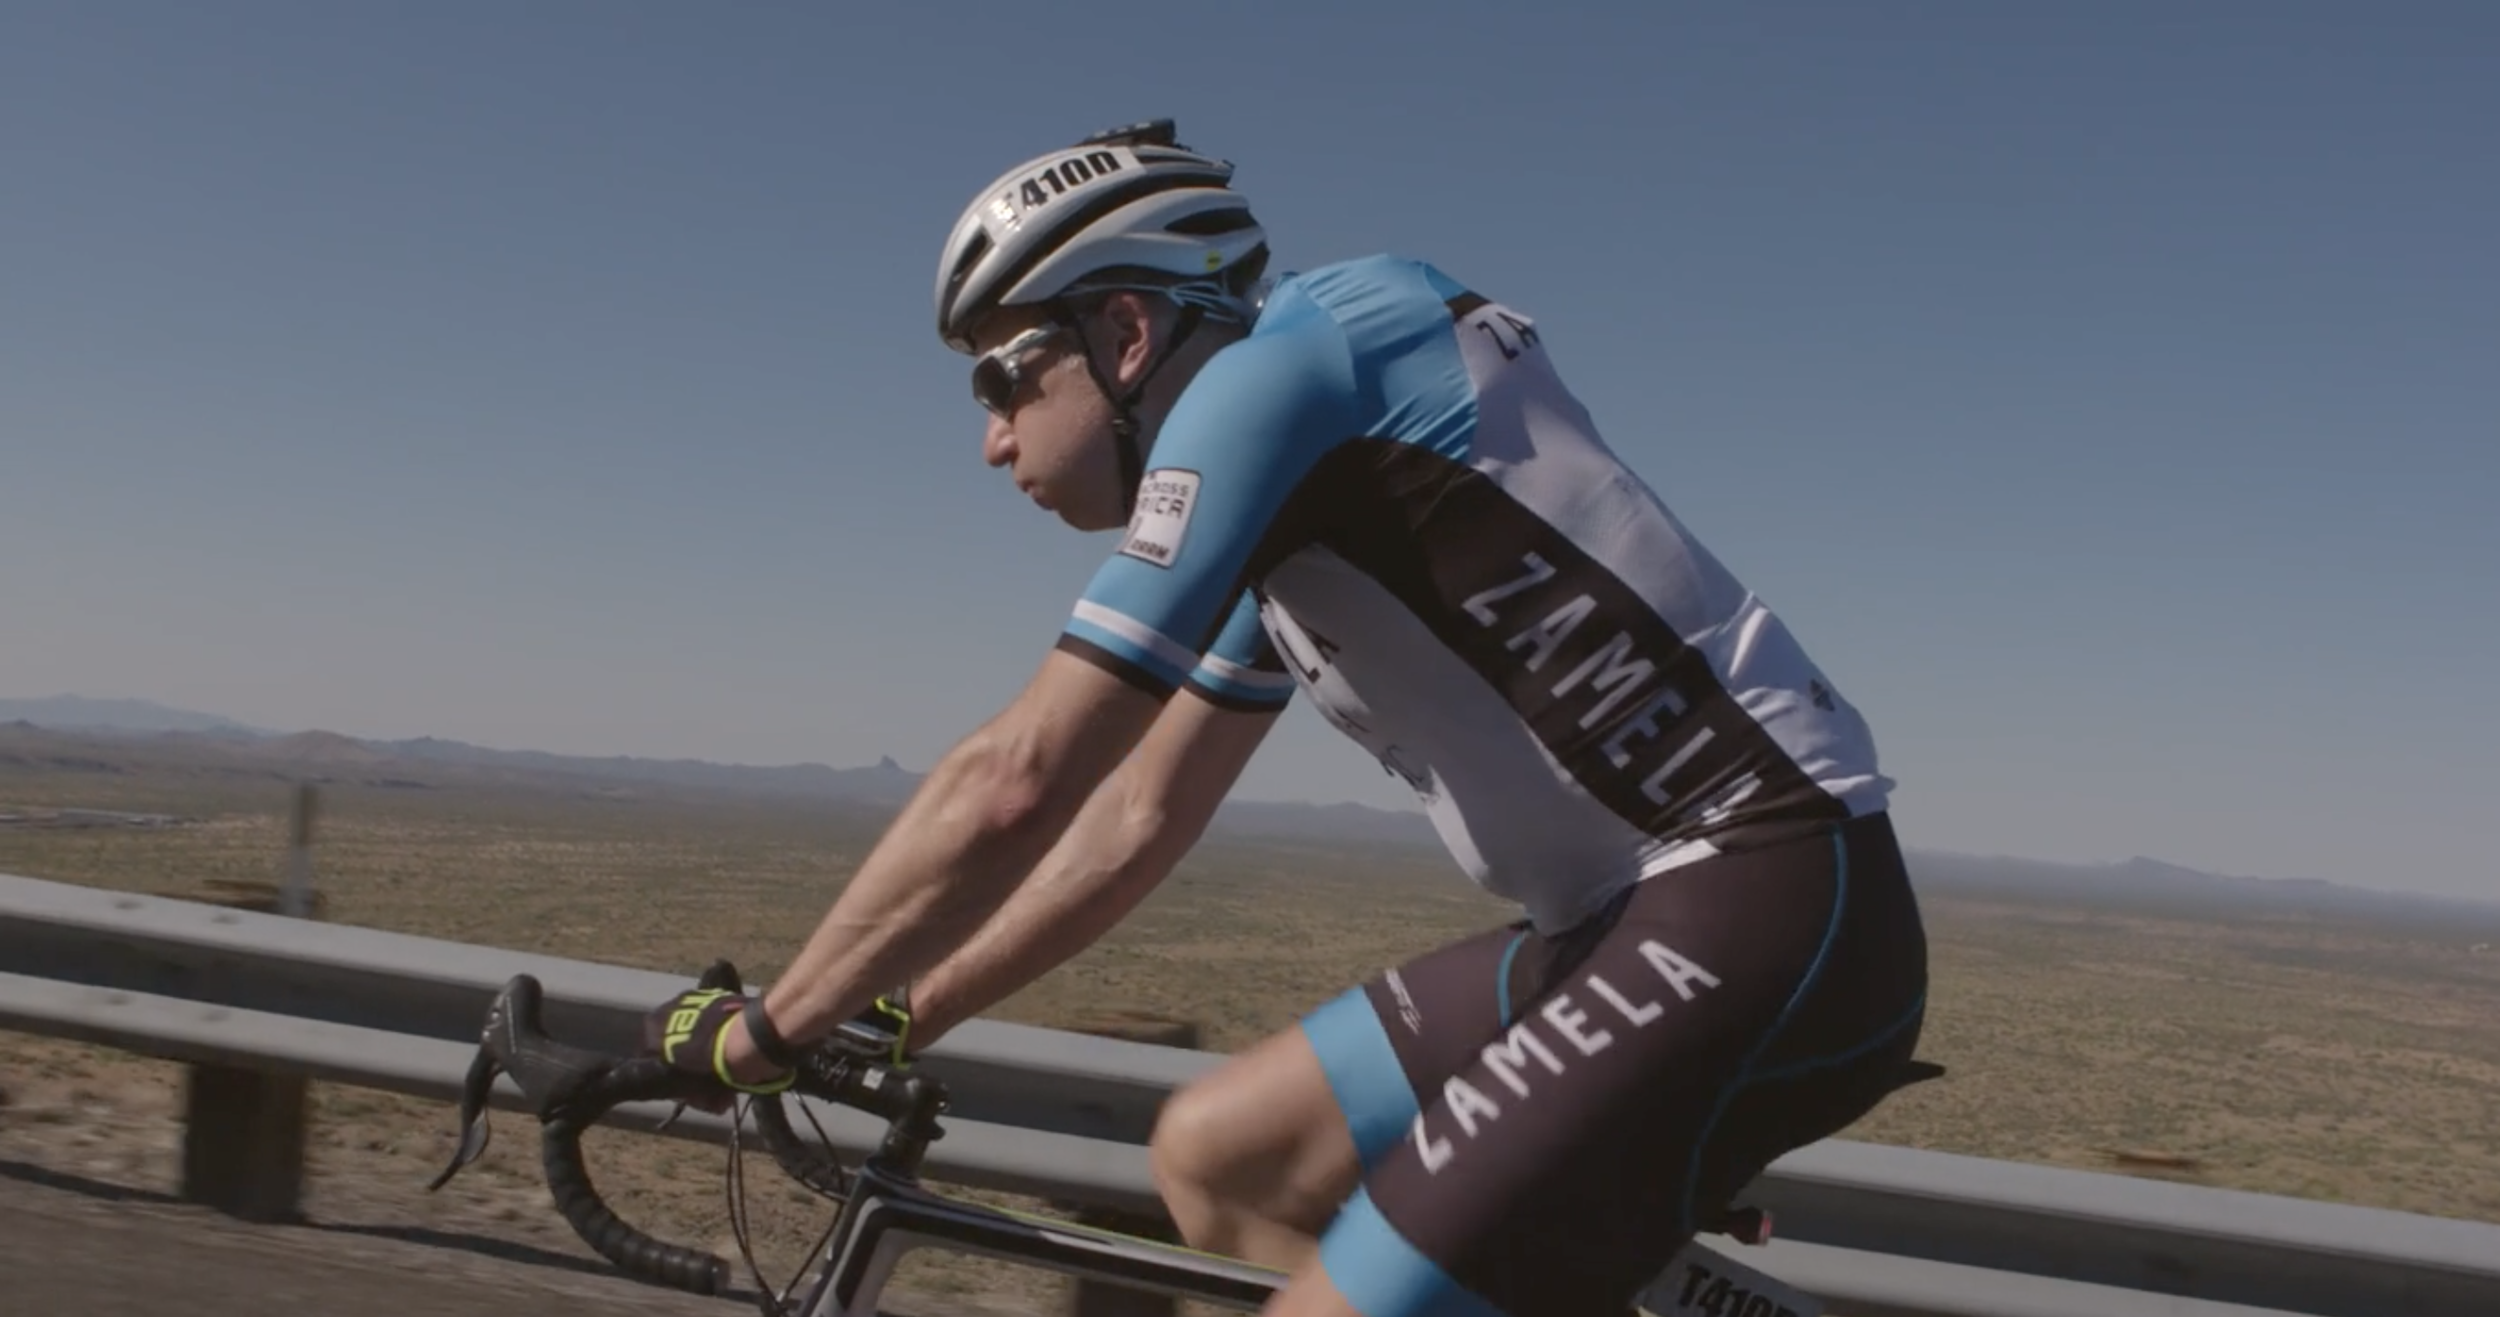 Matt Puomo riding uphill in the heat of the desert.